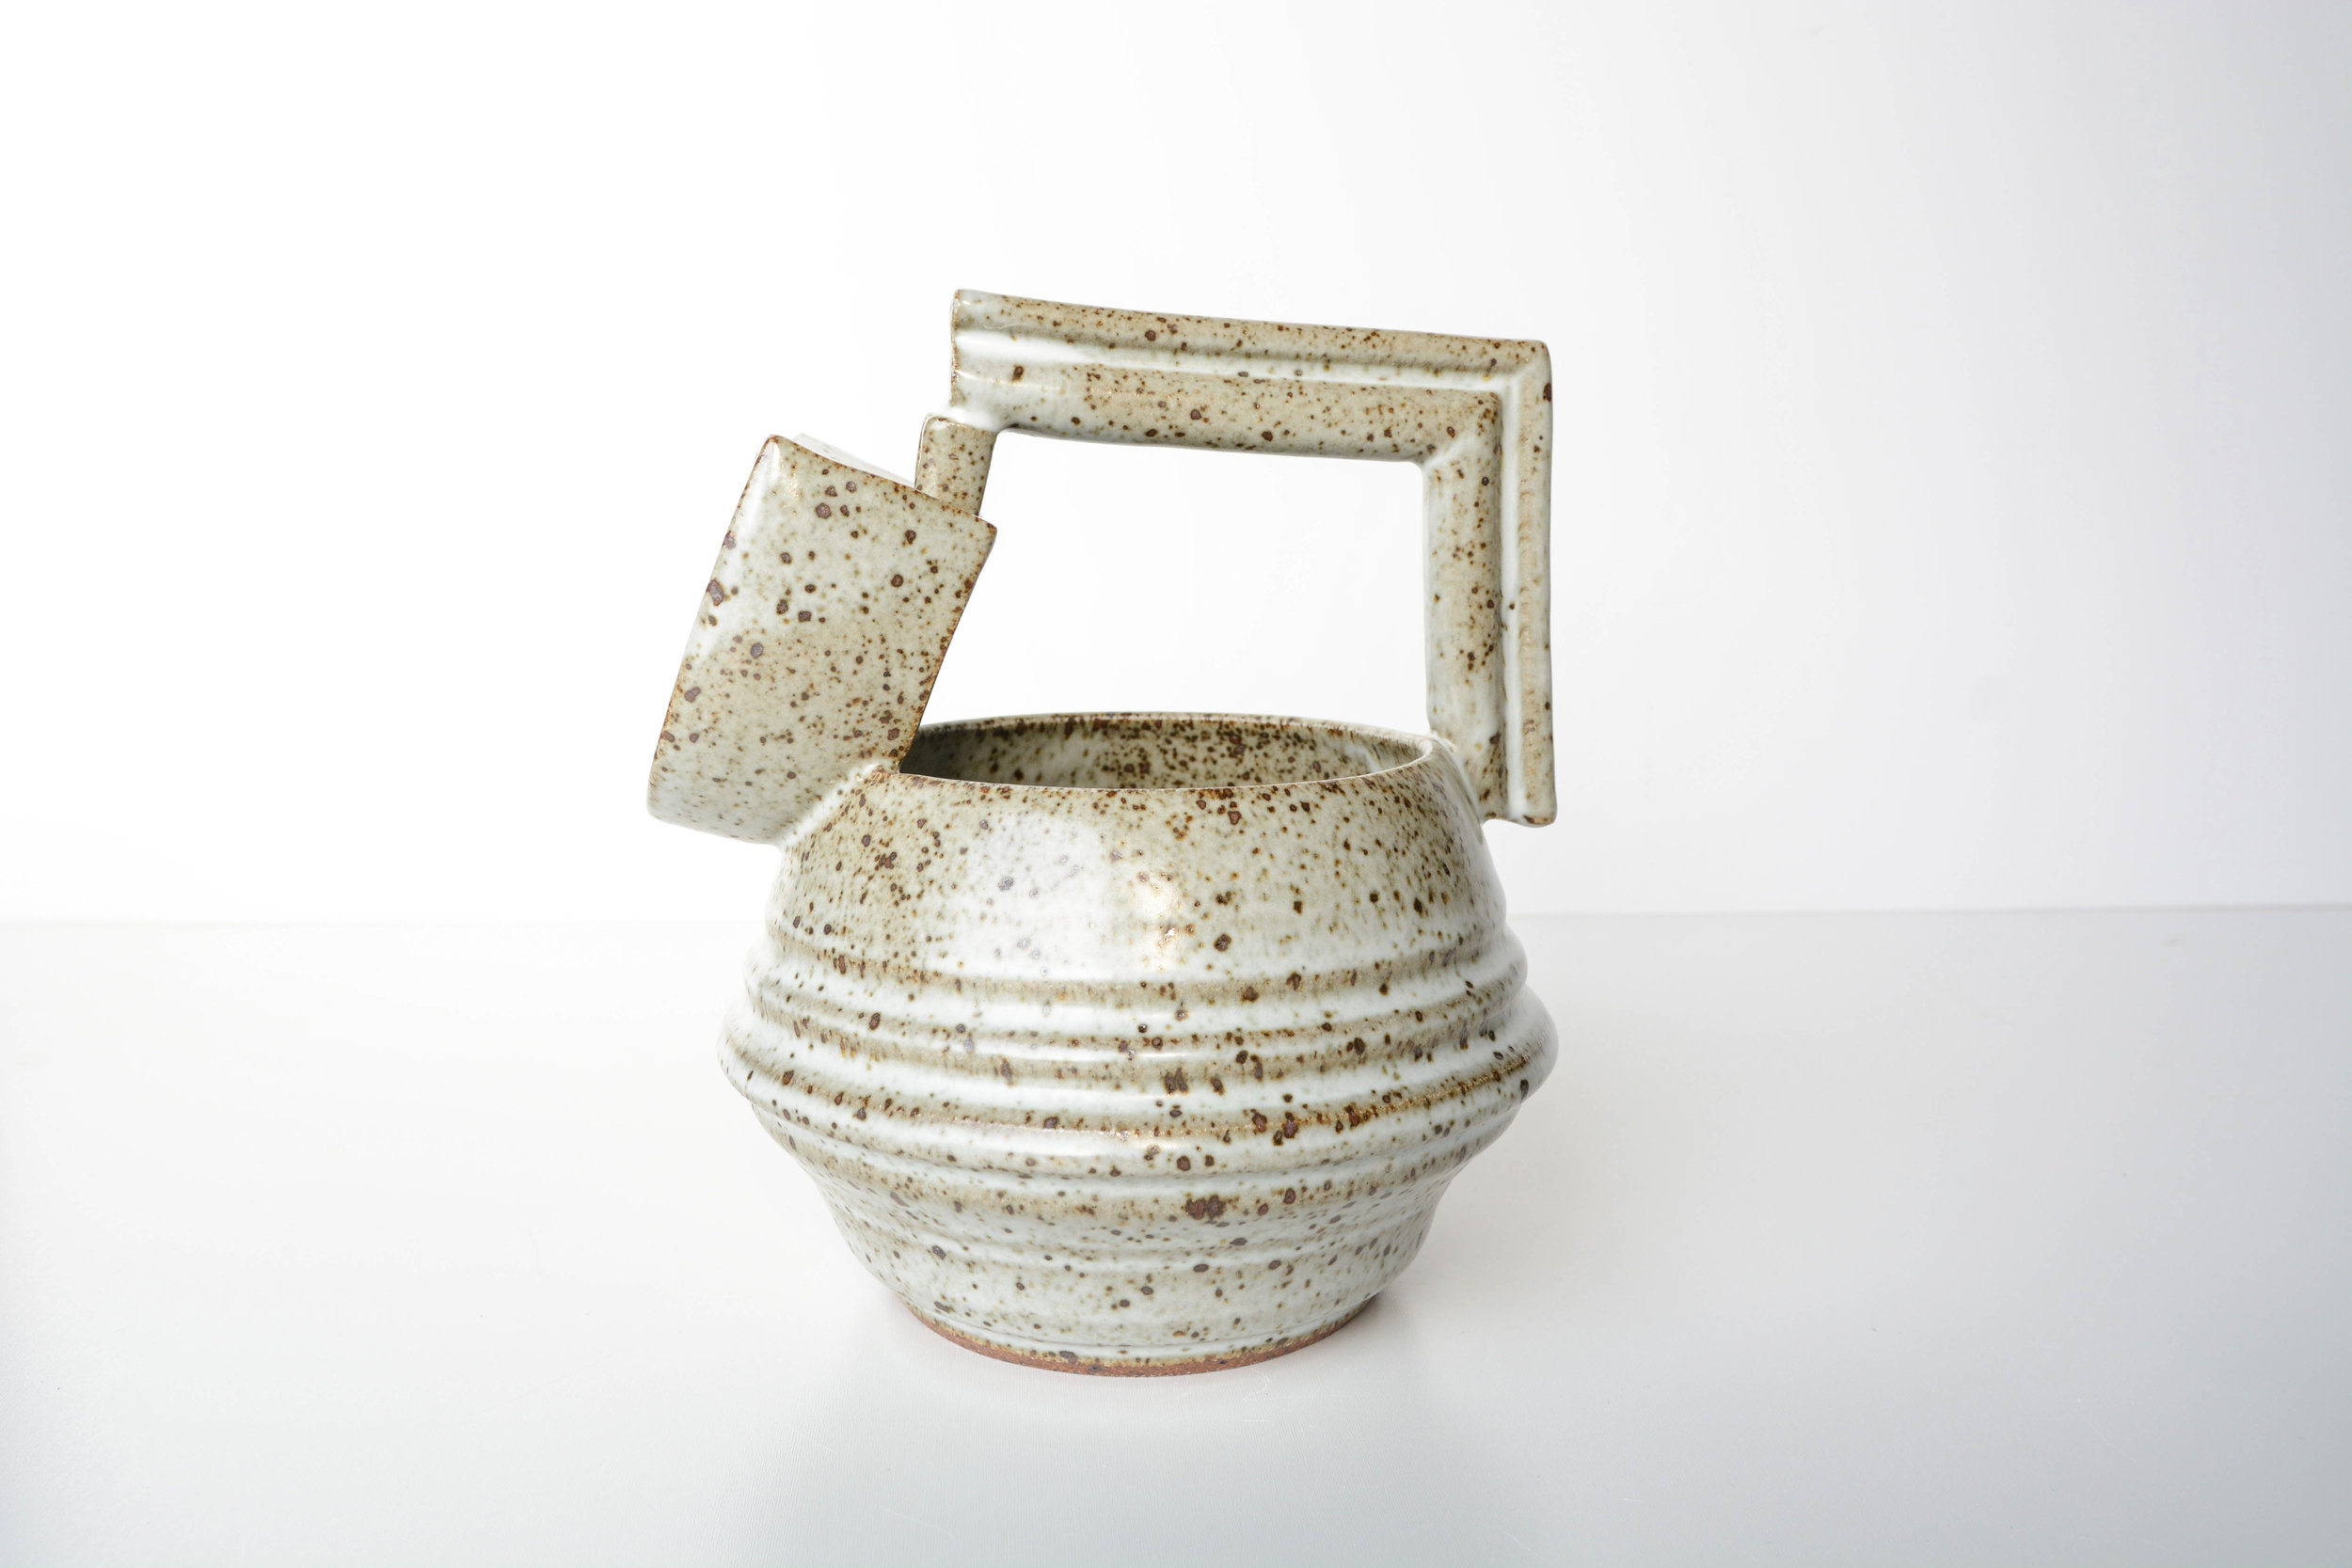 koikceramics2017 (38 of 42).jpg